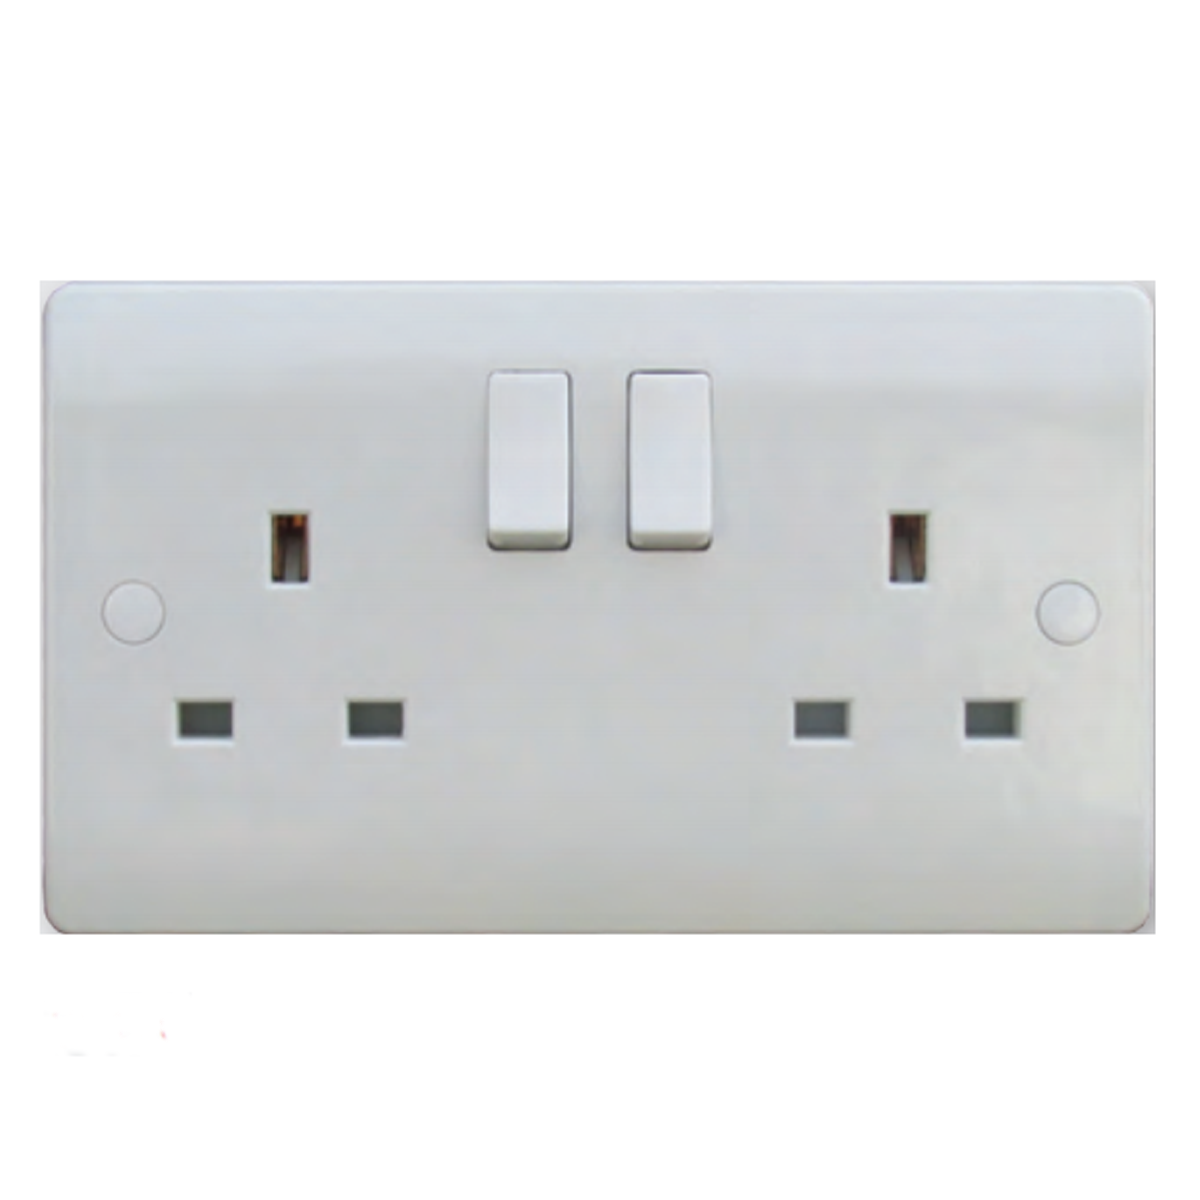 S-Line 2 Gang 13a Switched Socket Double Pole